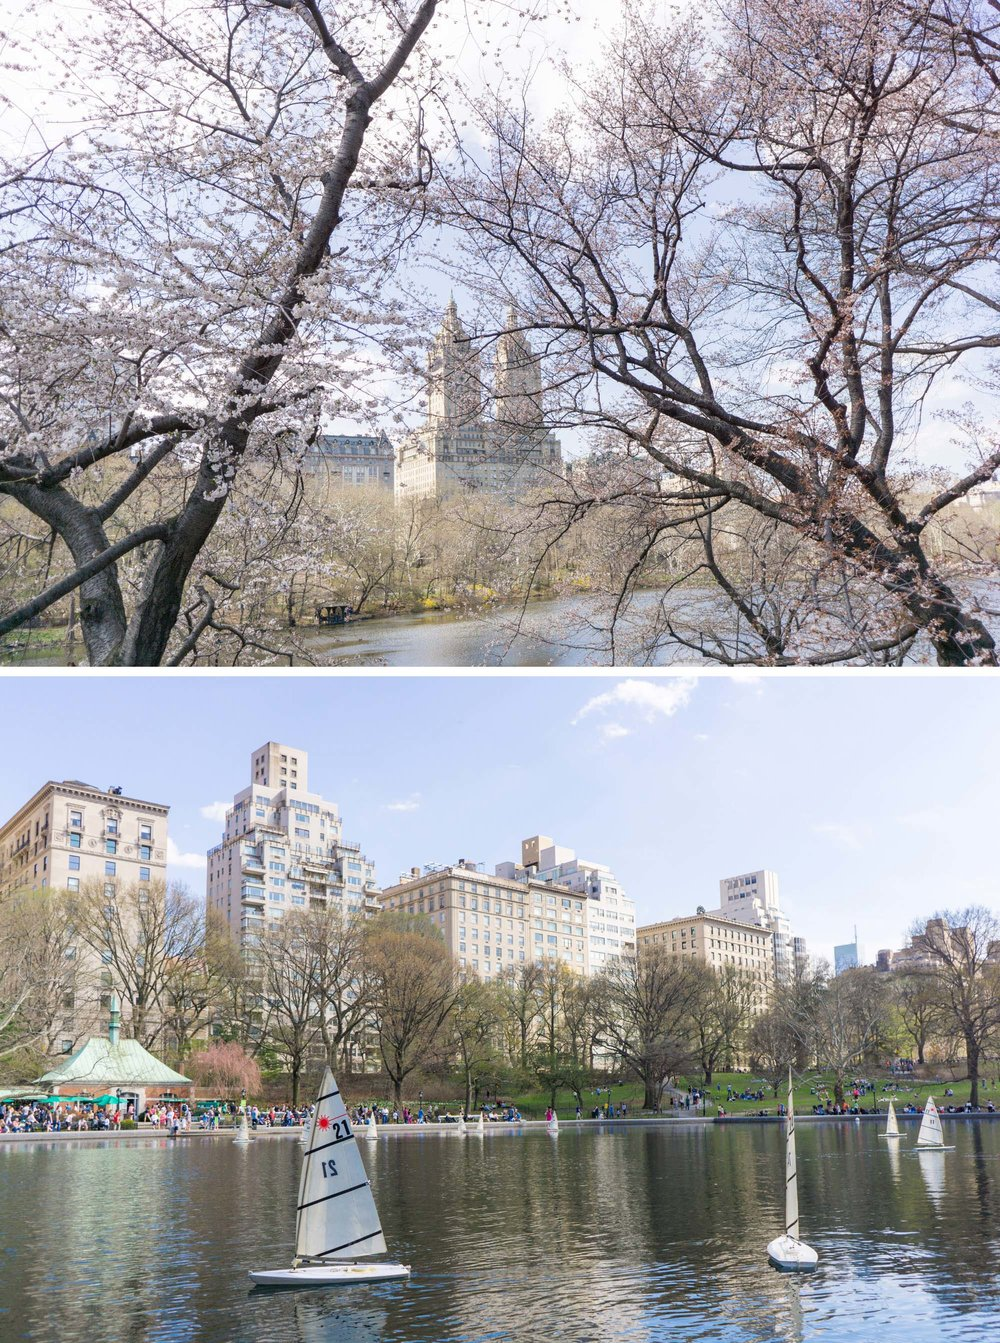 Central Park Travel Guide | New York | Your guide to Central Park in New York City. Filled with inspiring travel photography and tips.